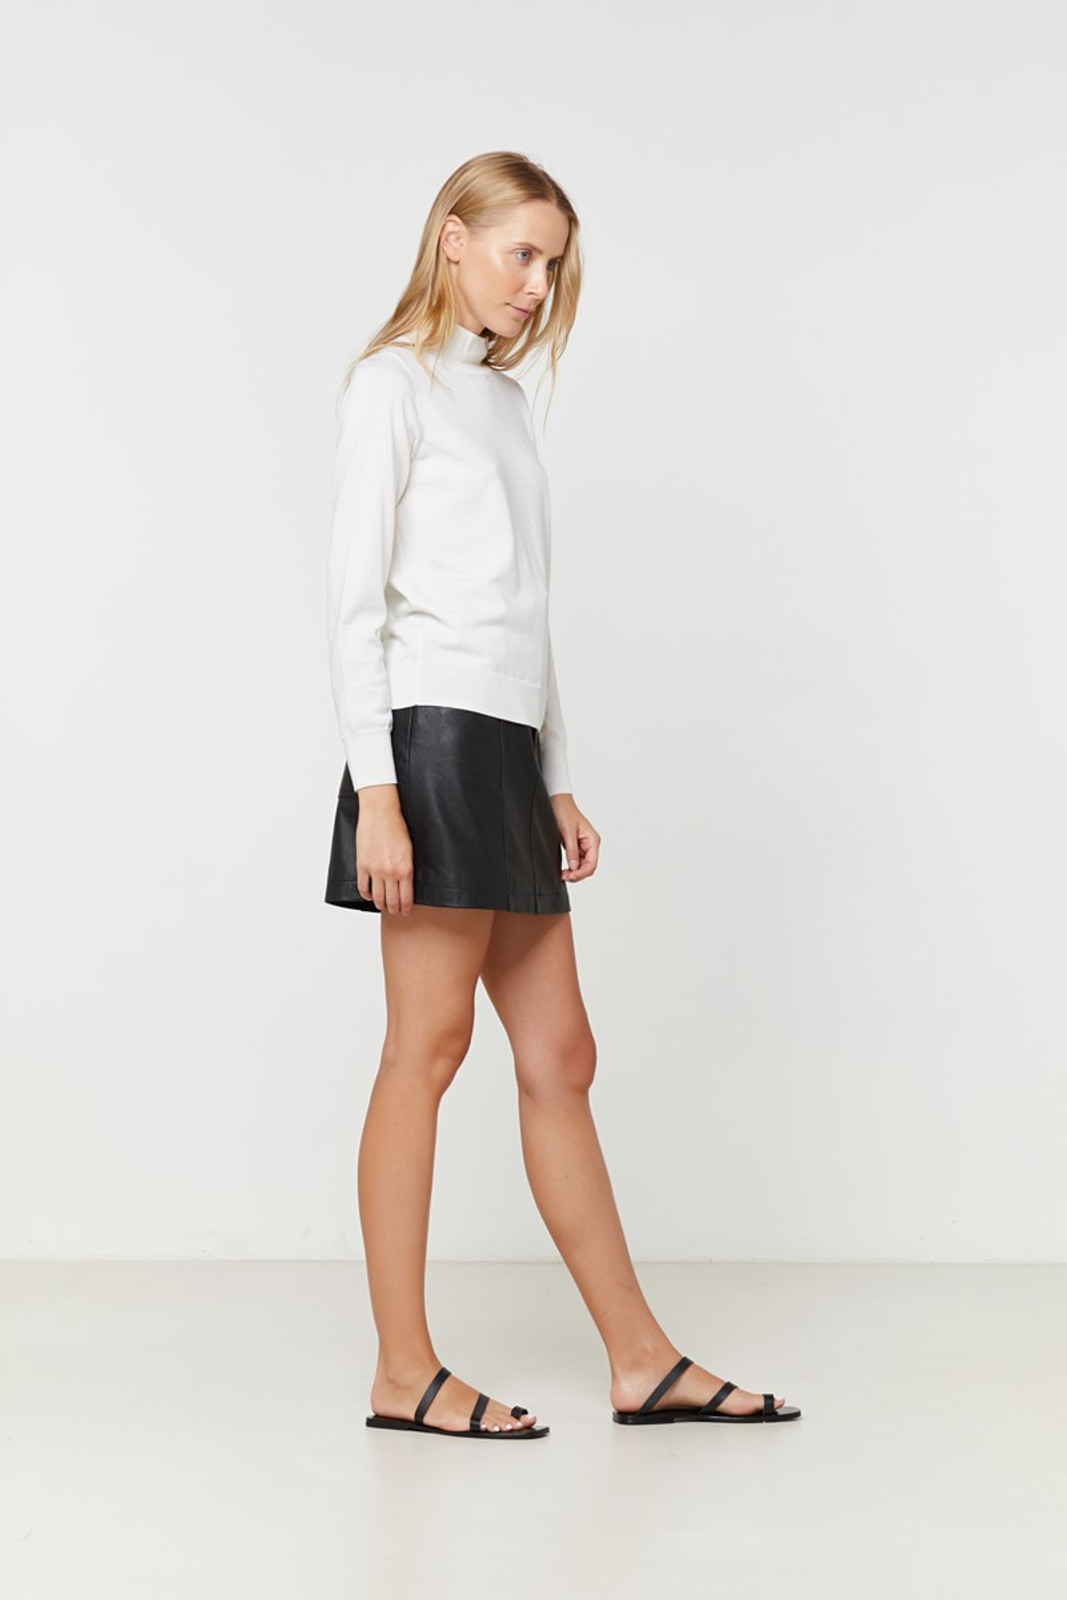 Elka Collective Rory Knit Neutrals  3